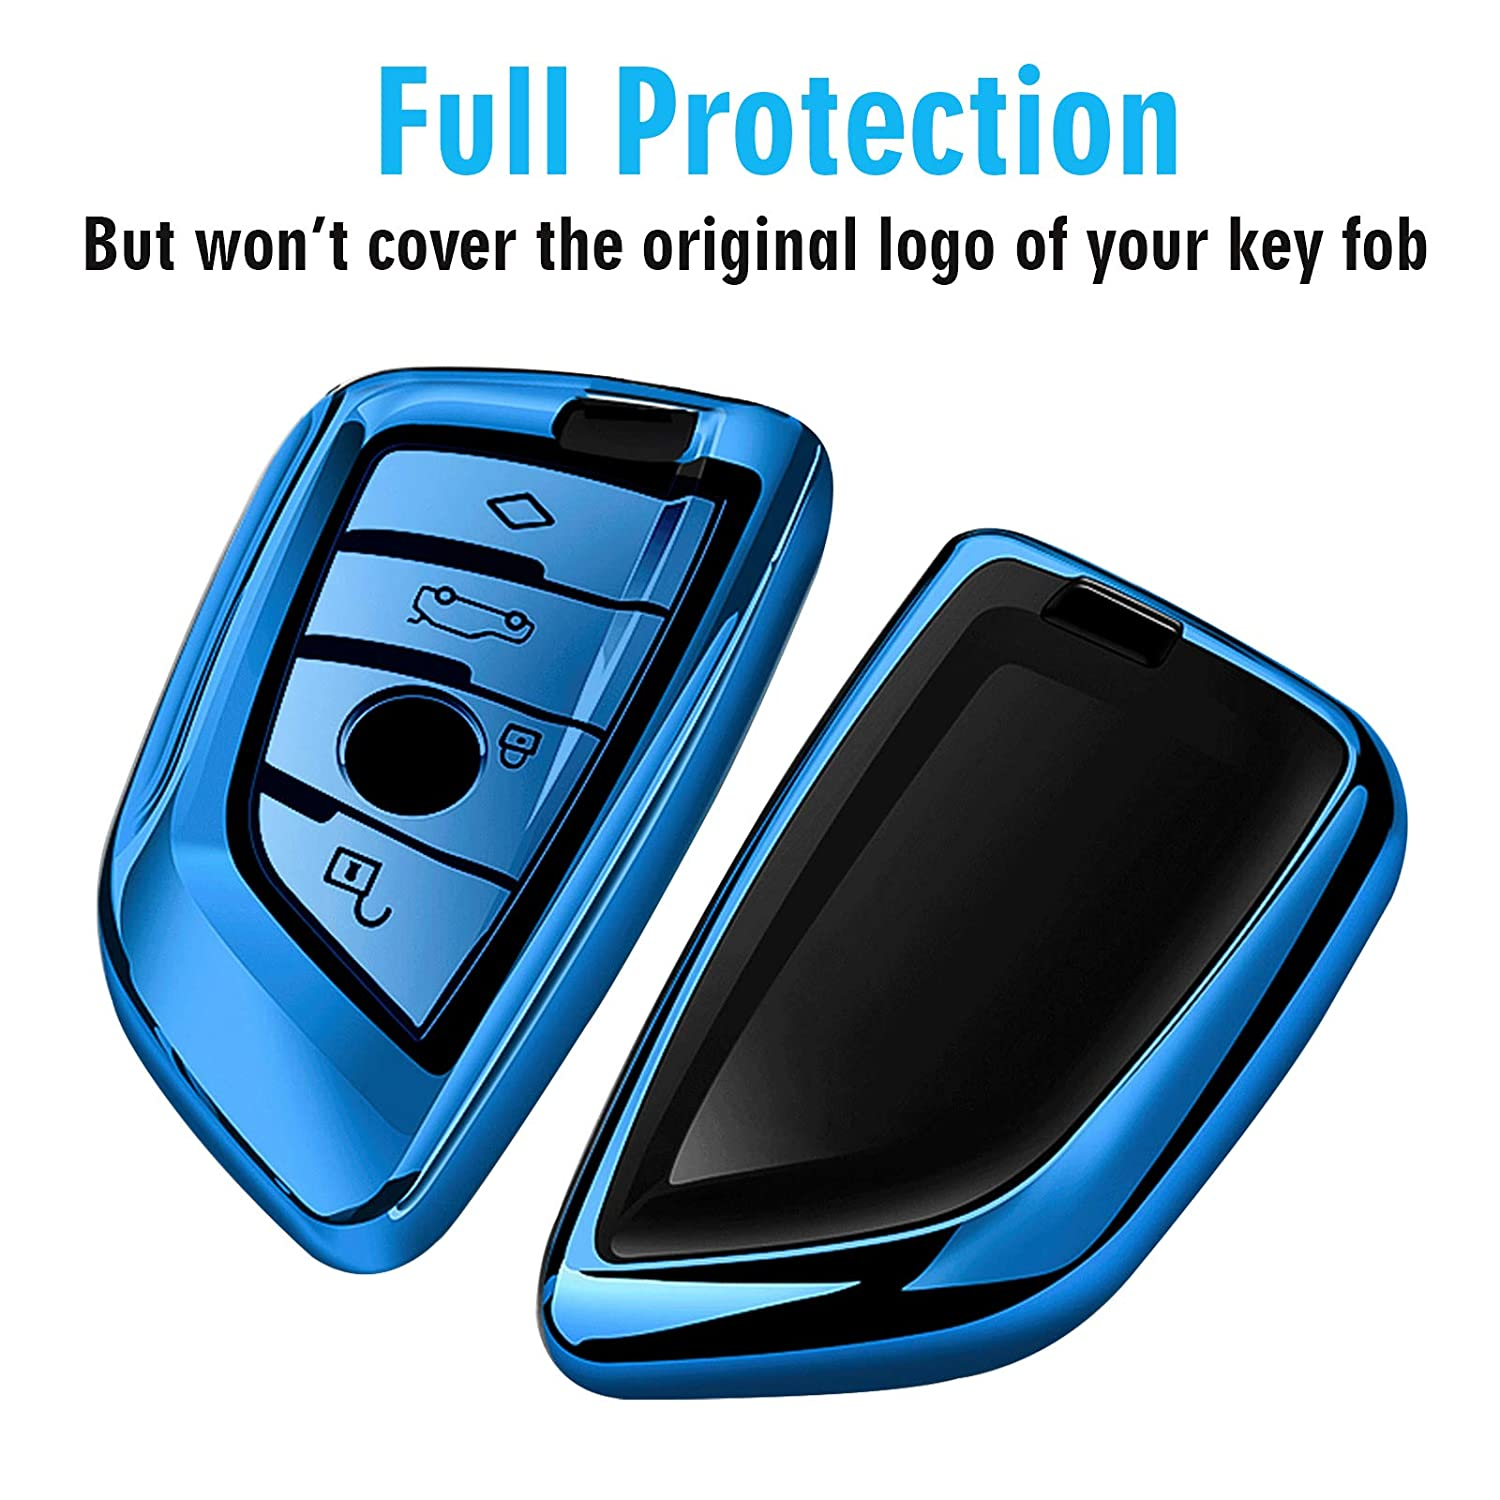 Uxinuo for BMW Key Fob Cover Full Protection Soft TPU Key Fob Case Compatible with BMW X1 X3 X5 X6 and 5 Series 2018 7 Series 2017 up 2 Series and 6 Series GT Keyless Entry Rose Gold